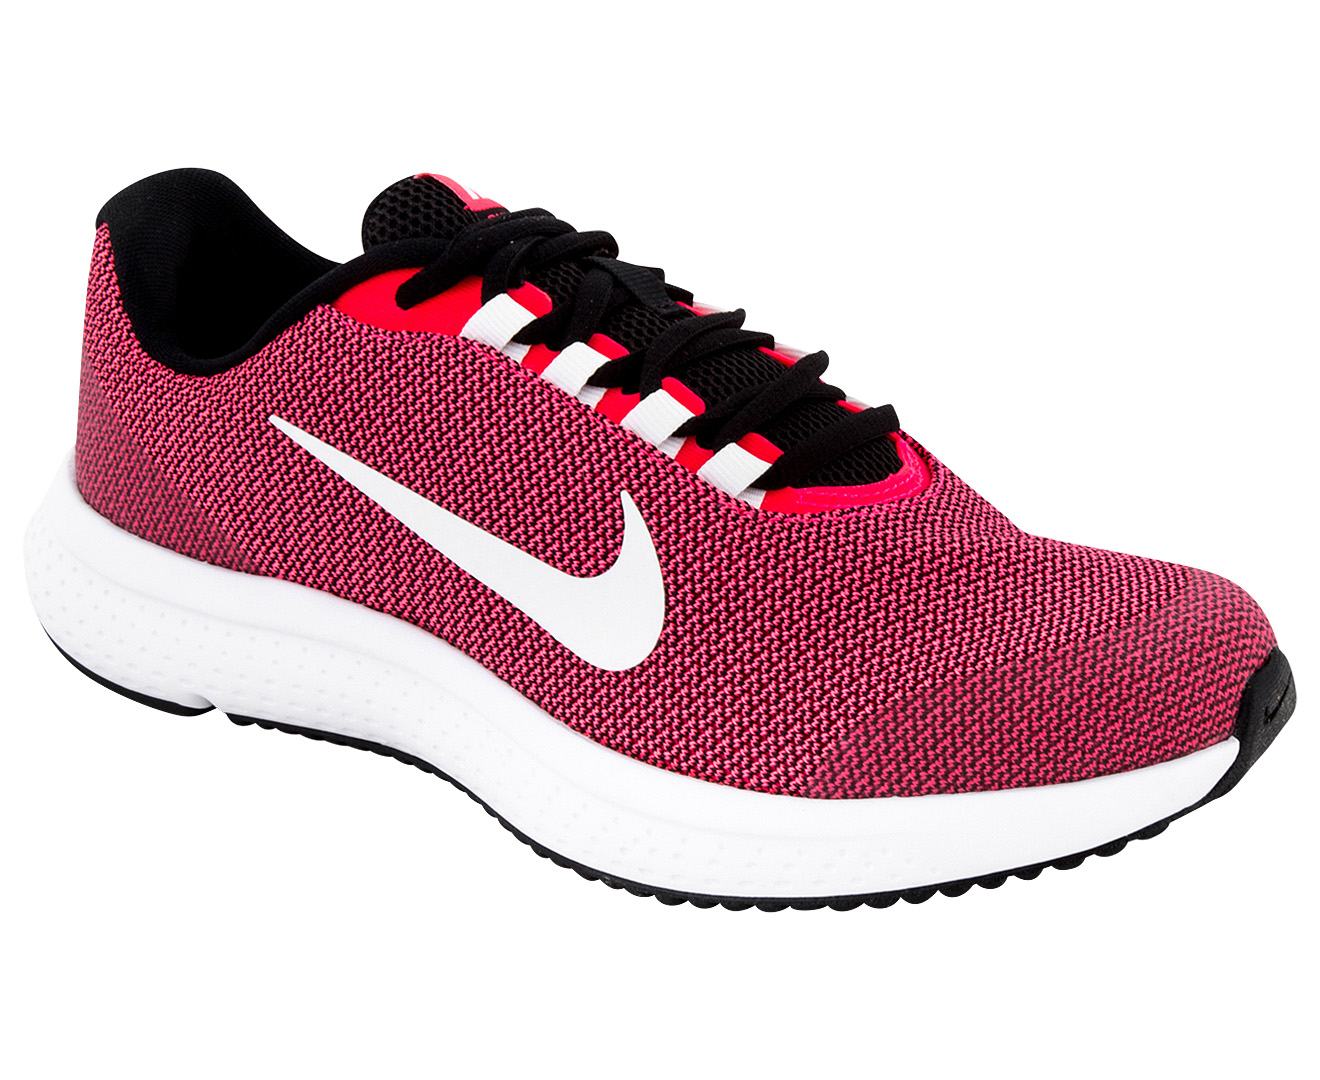 Nike Women's Runallday Shoe - Racer Pink/White-Black | Great daily deals at  Australia's favourite superstore | Mumgo.com.au